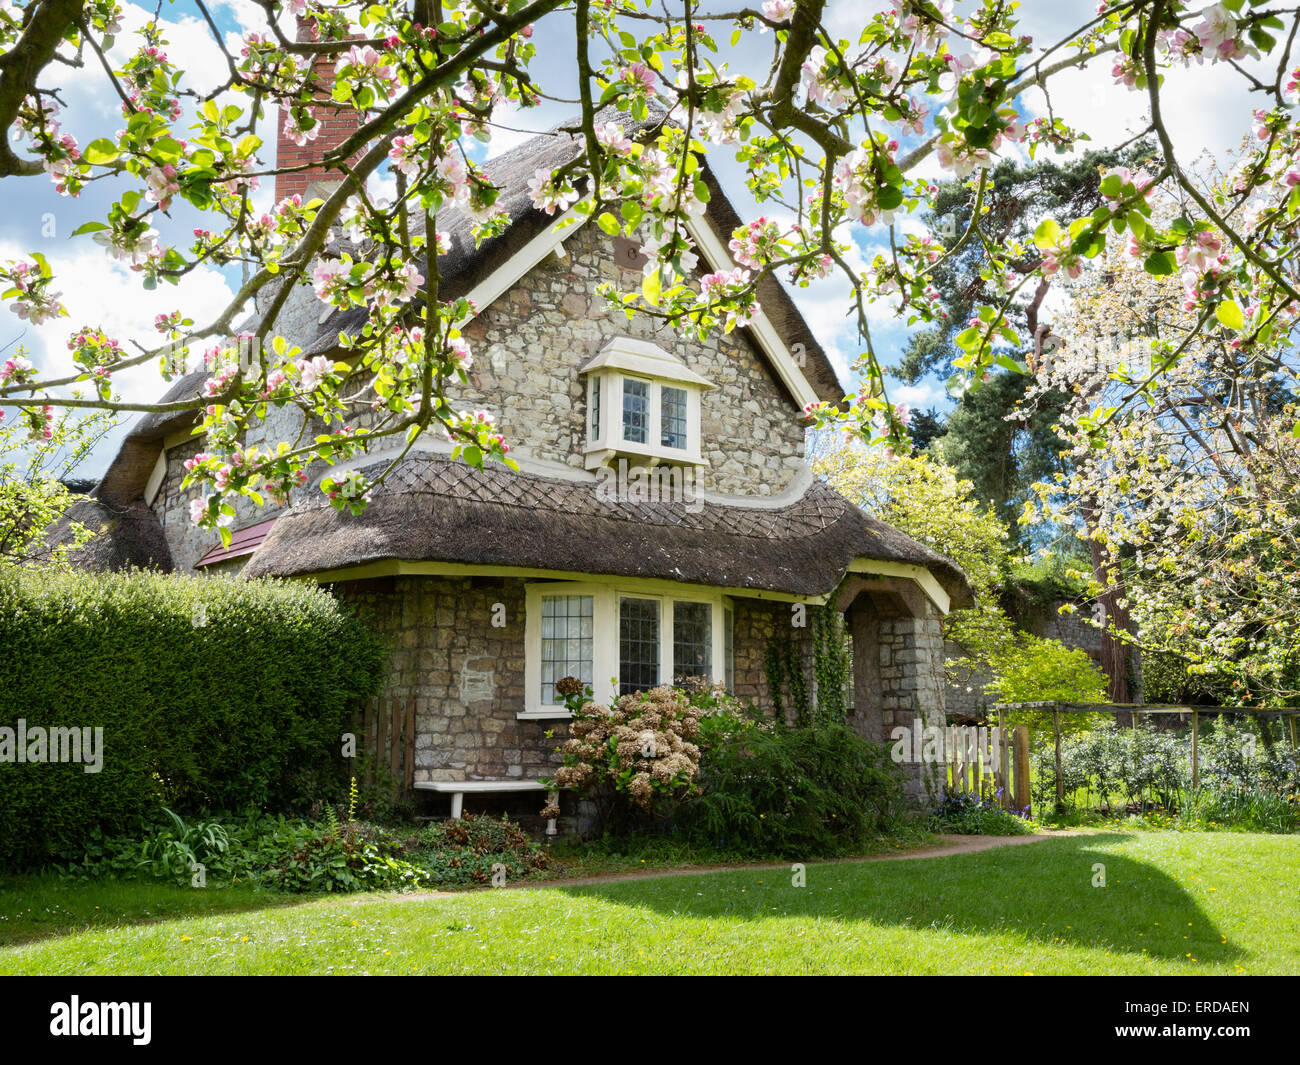 Dutch Cottage in spring at Blaise Hamlet - a Picturesque style group of nine cottages around a green designed by - Stock Image